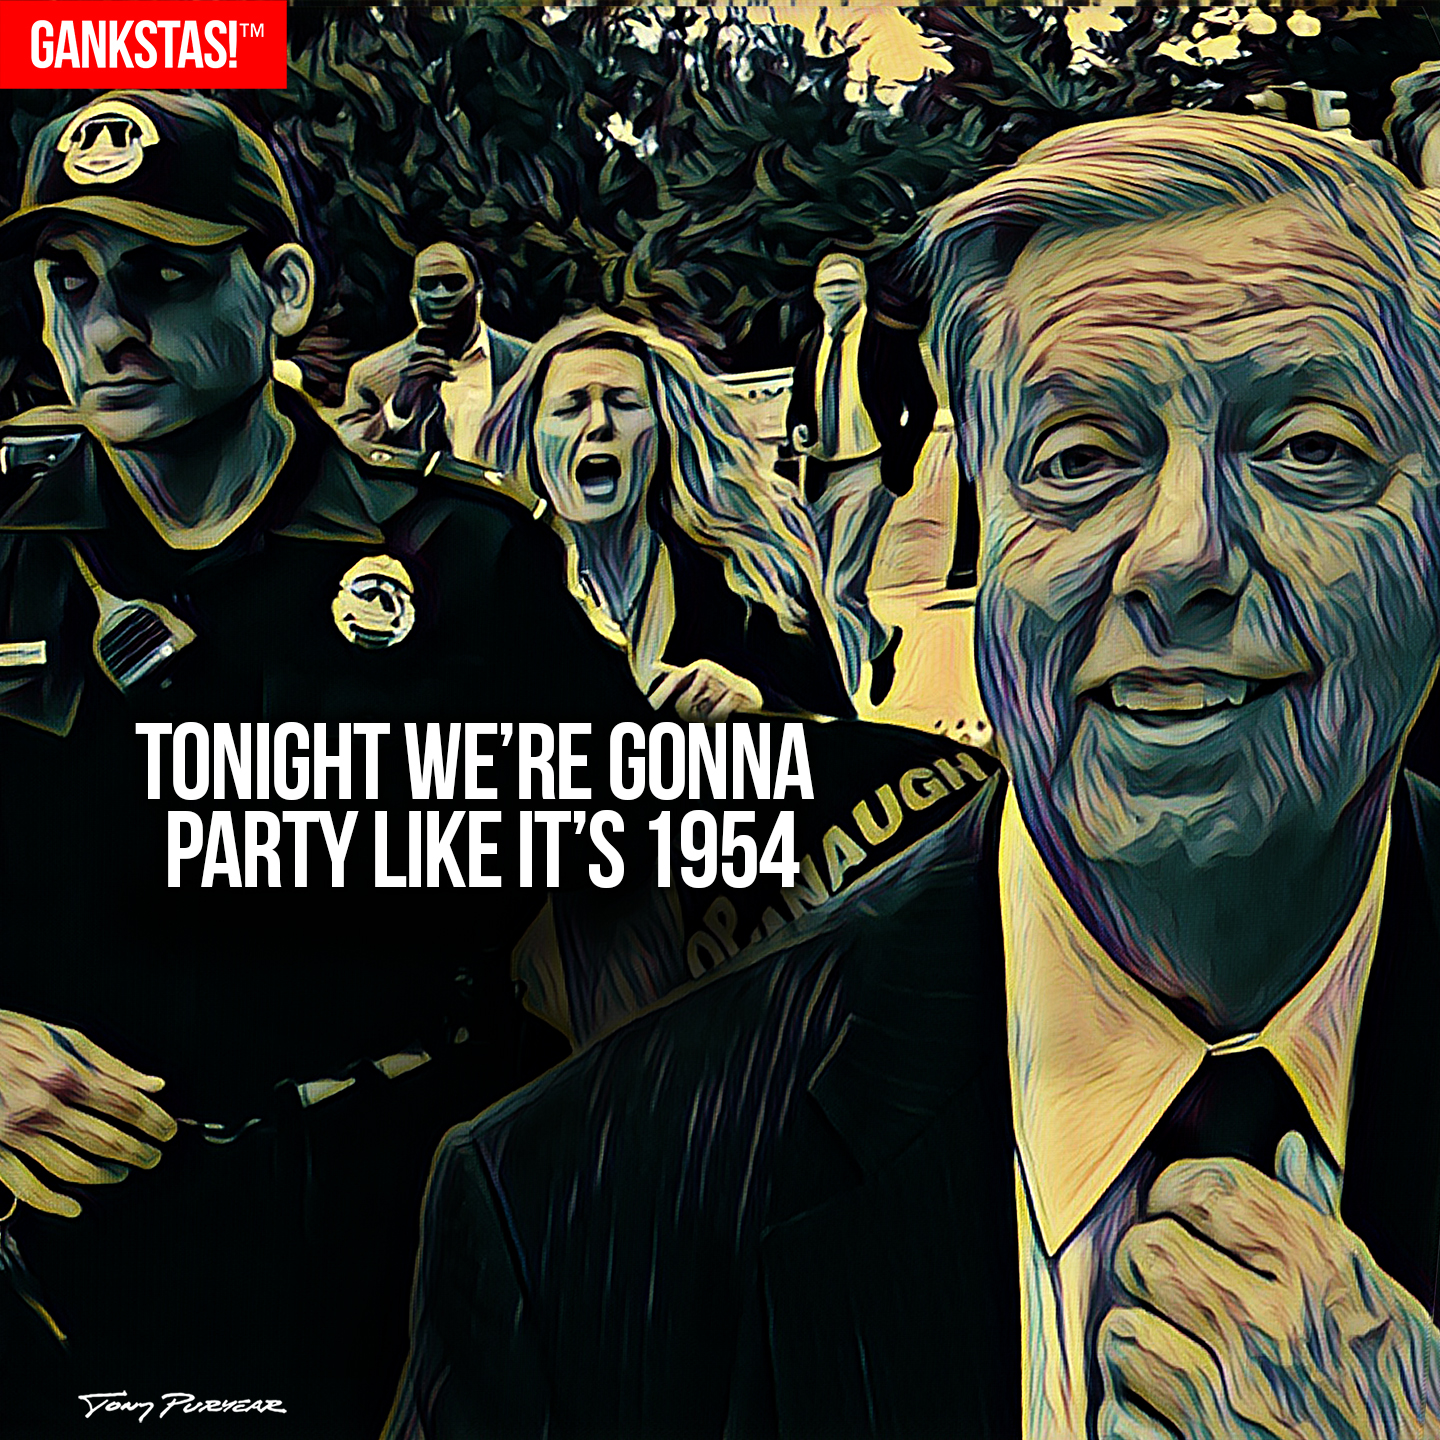 """"""" WE'RE GONNA PARTY LIKE IT'S 1954 """" - 2017, digital print on acid-free paper, 14.5""""x14.5""""  Lindsey Graham  exults after the confirmation of  Brett Kavanaugh  to the Supreme Court."""